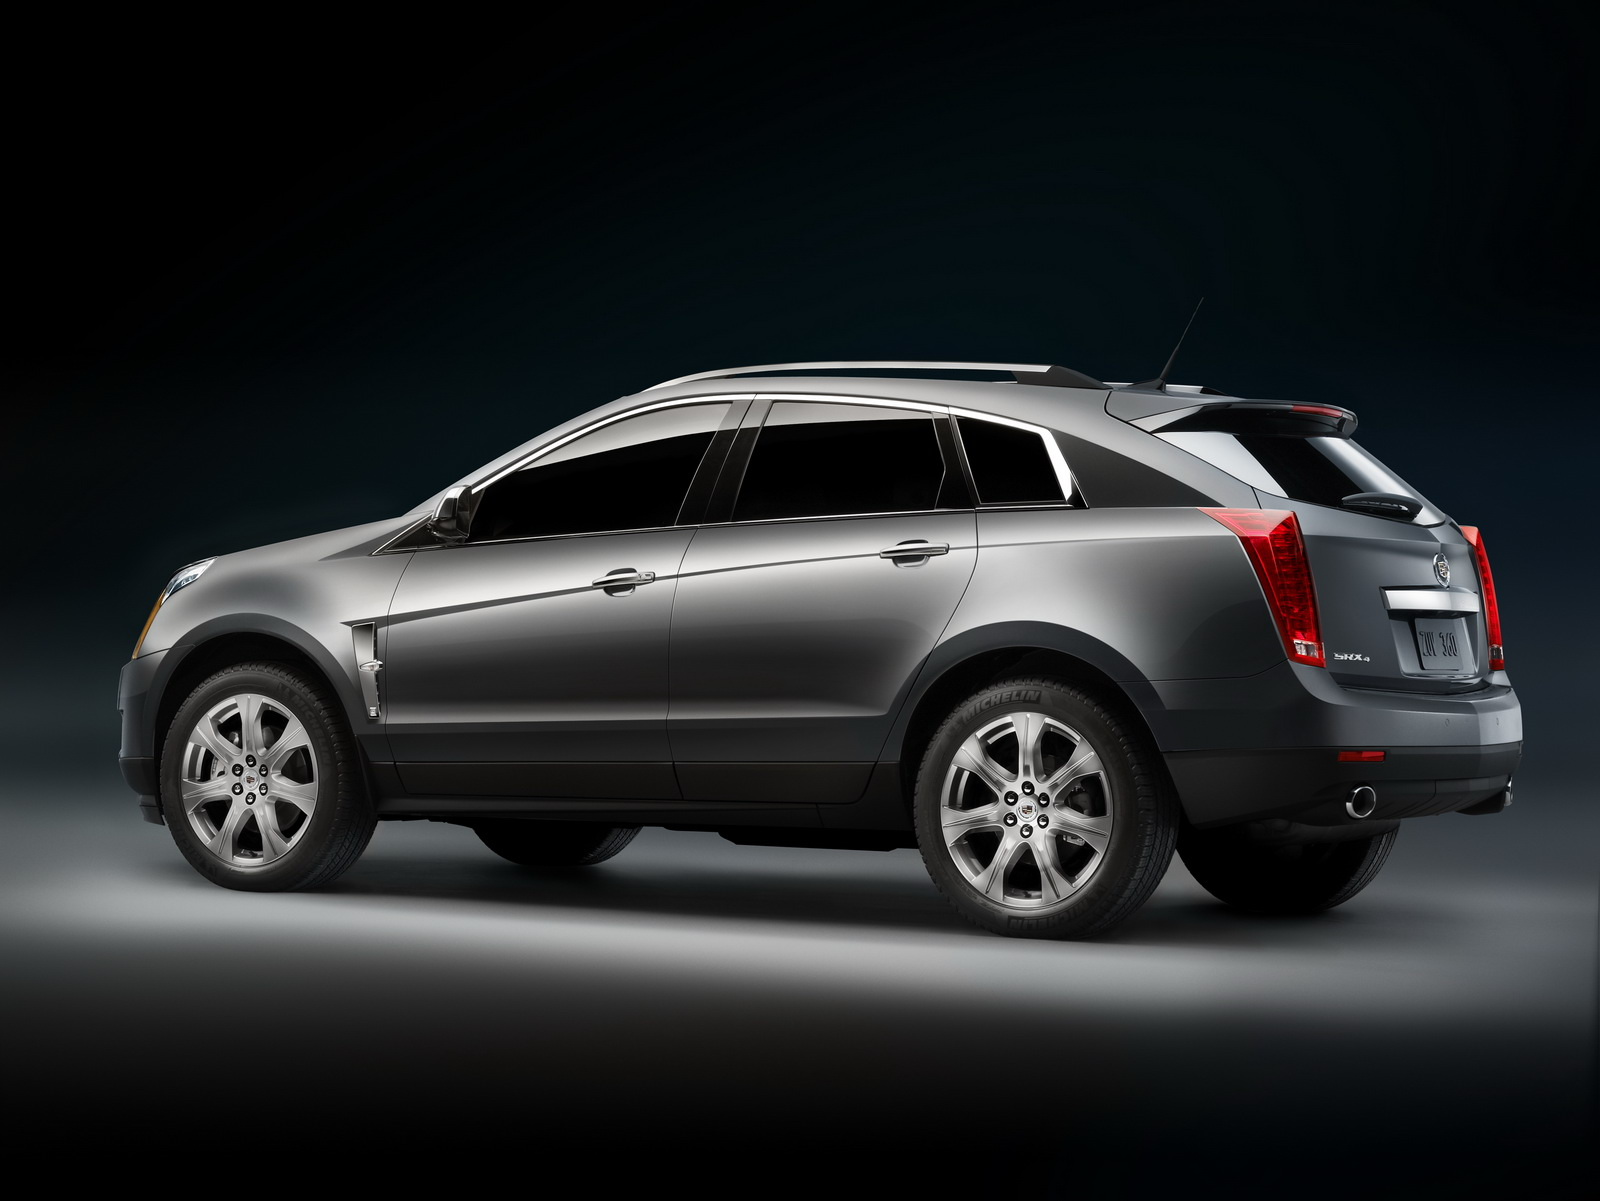 Cadillac SRX 2010 Wallpapers HD